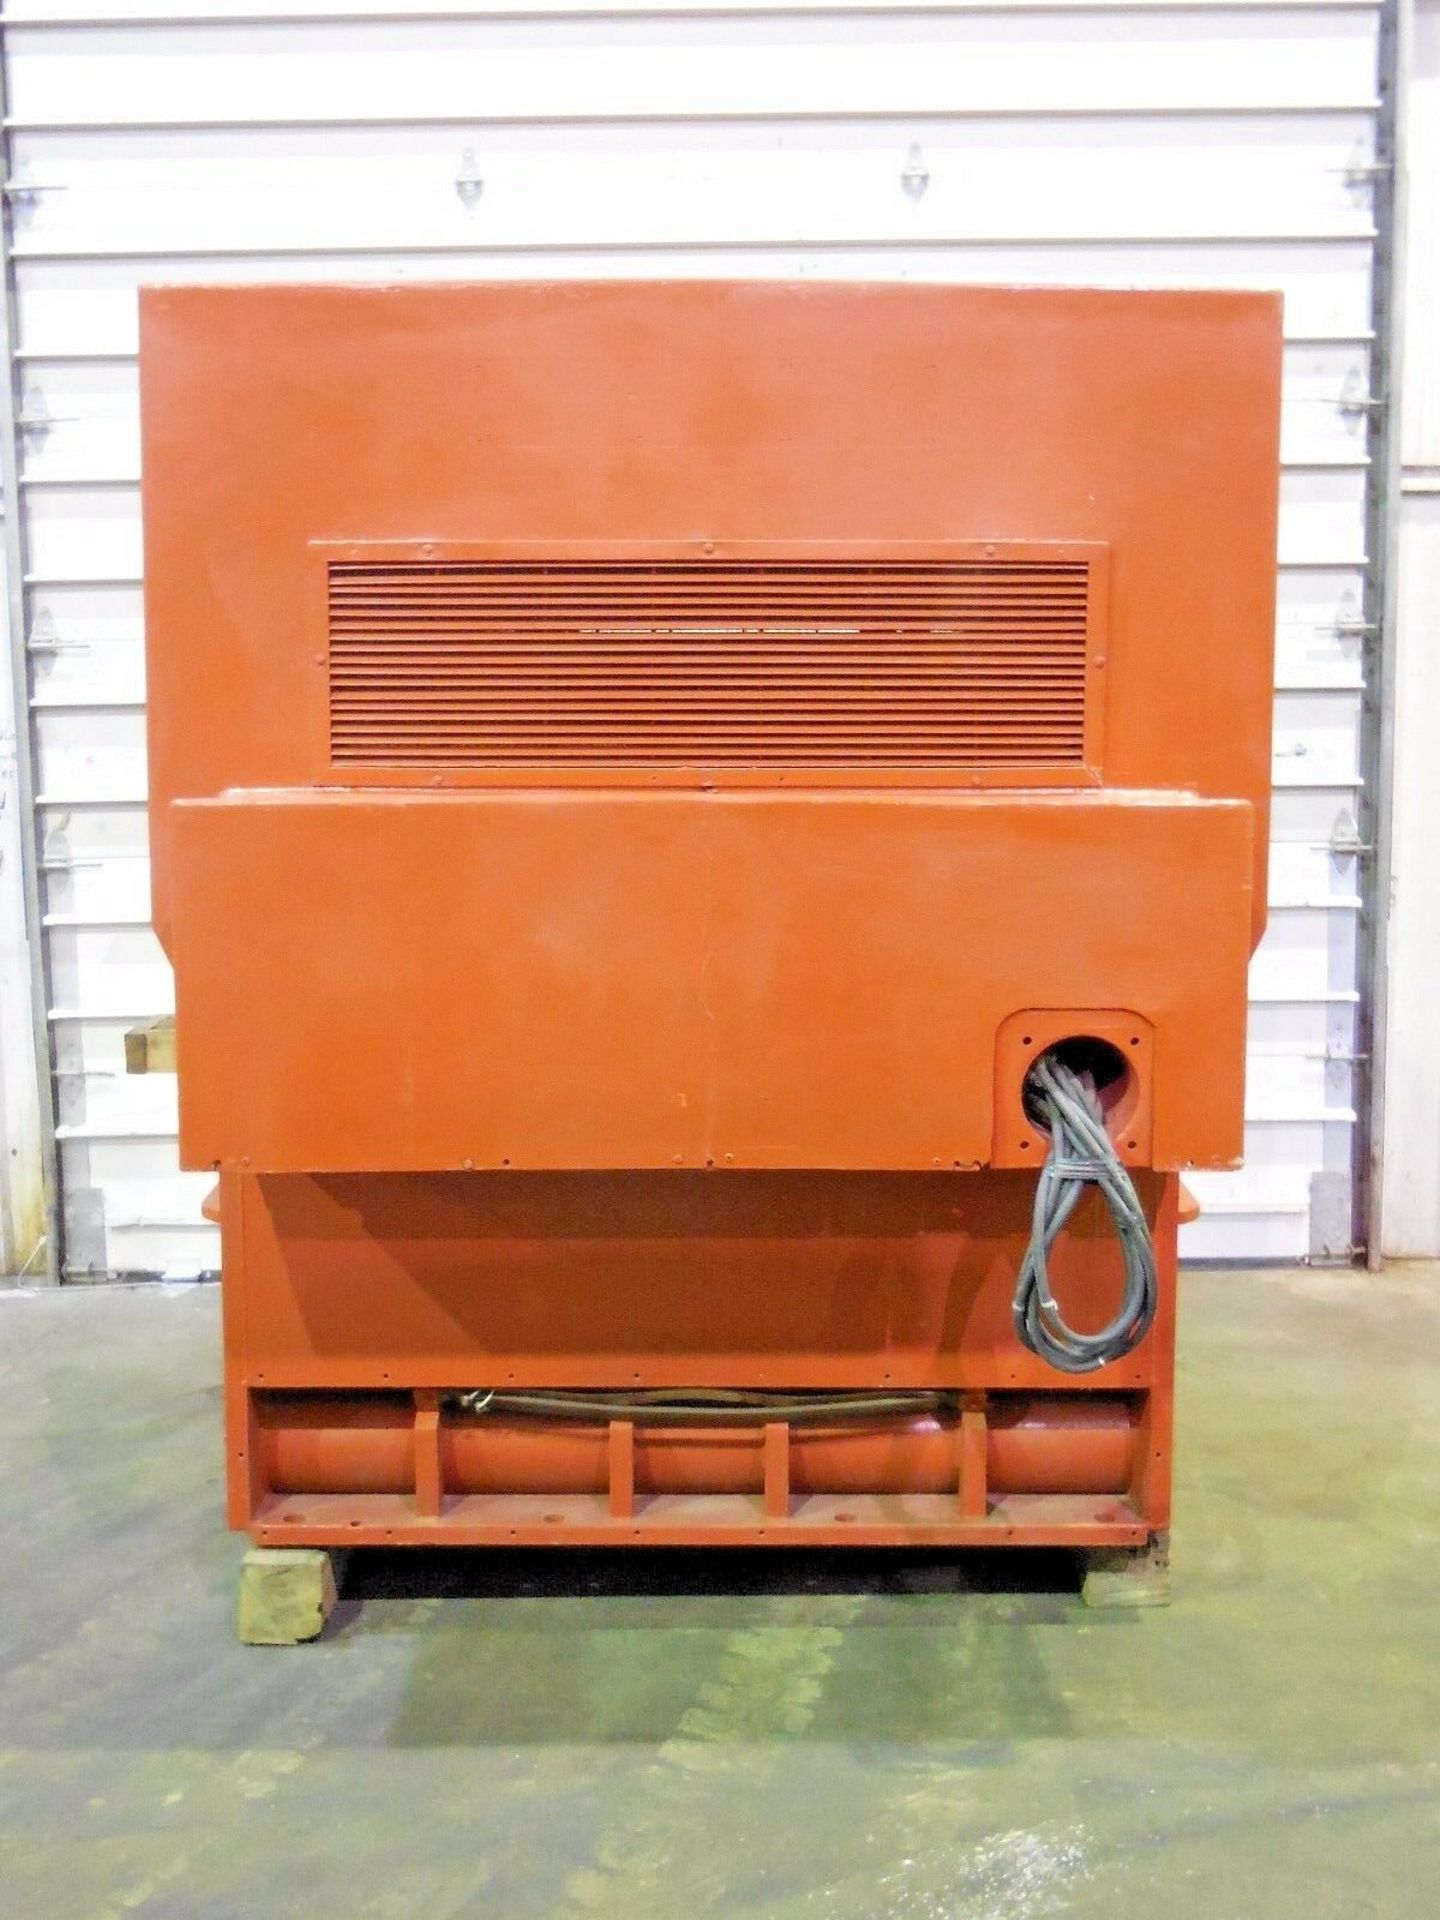 Allis Chalmers 3000 HP Induction Motor. 3572 RPM. 4000 V. Type ANW. 3 Ph. 60 Hz. - Image 2 of 6